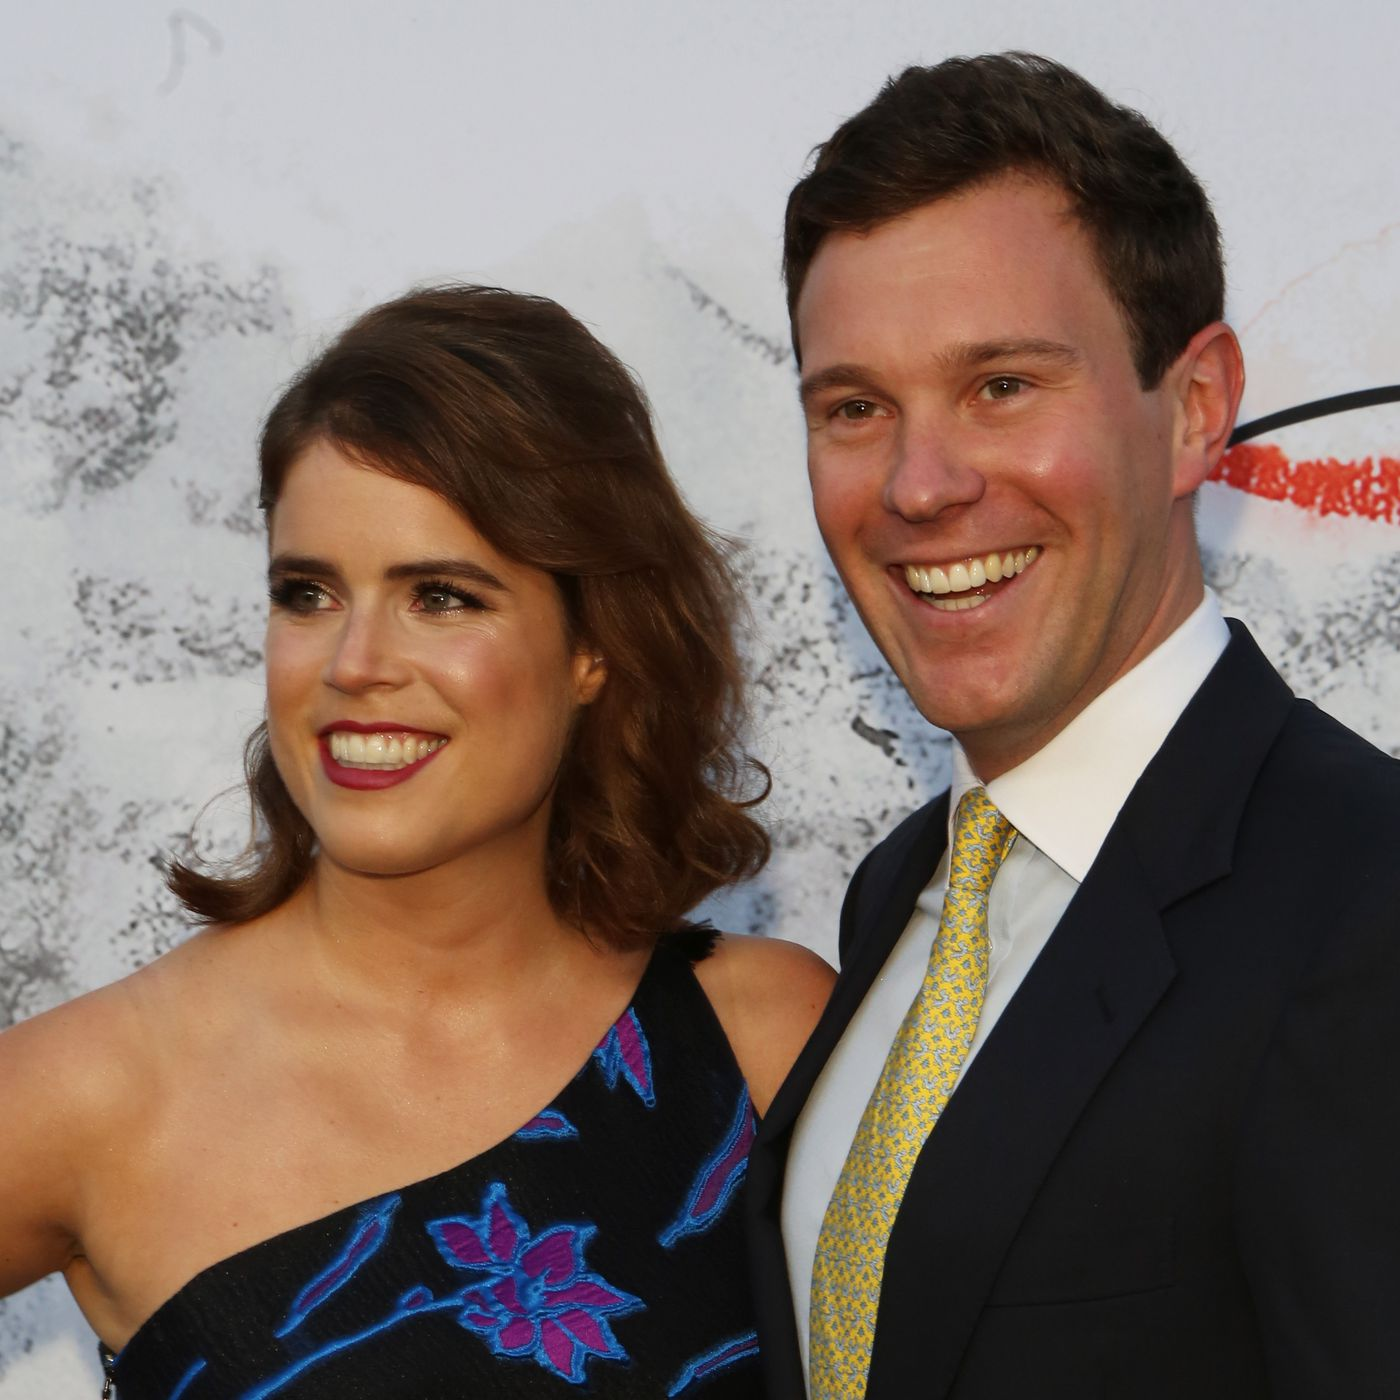 Princess Eugenie S Wedding Look Might Be Bolder Than Meghan